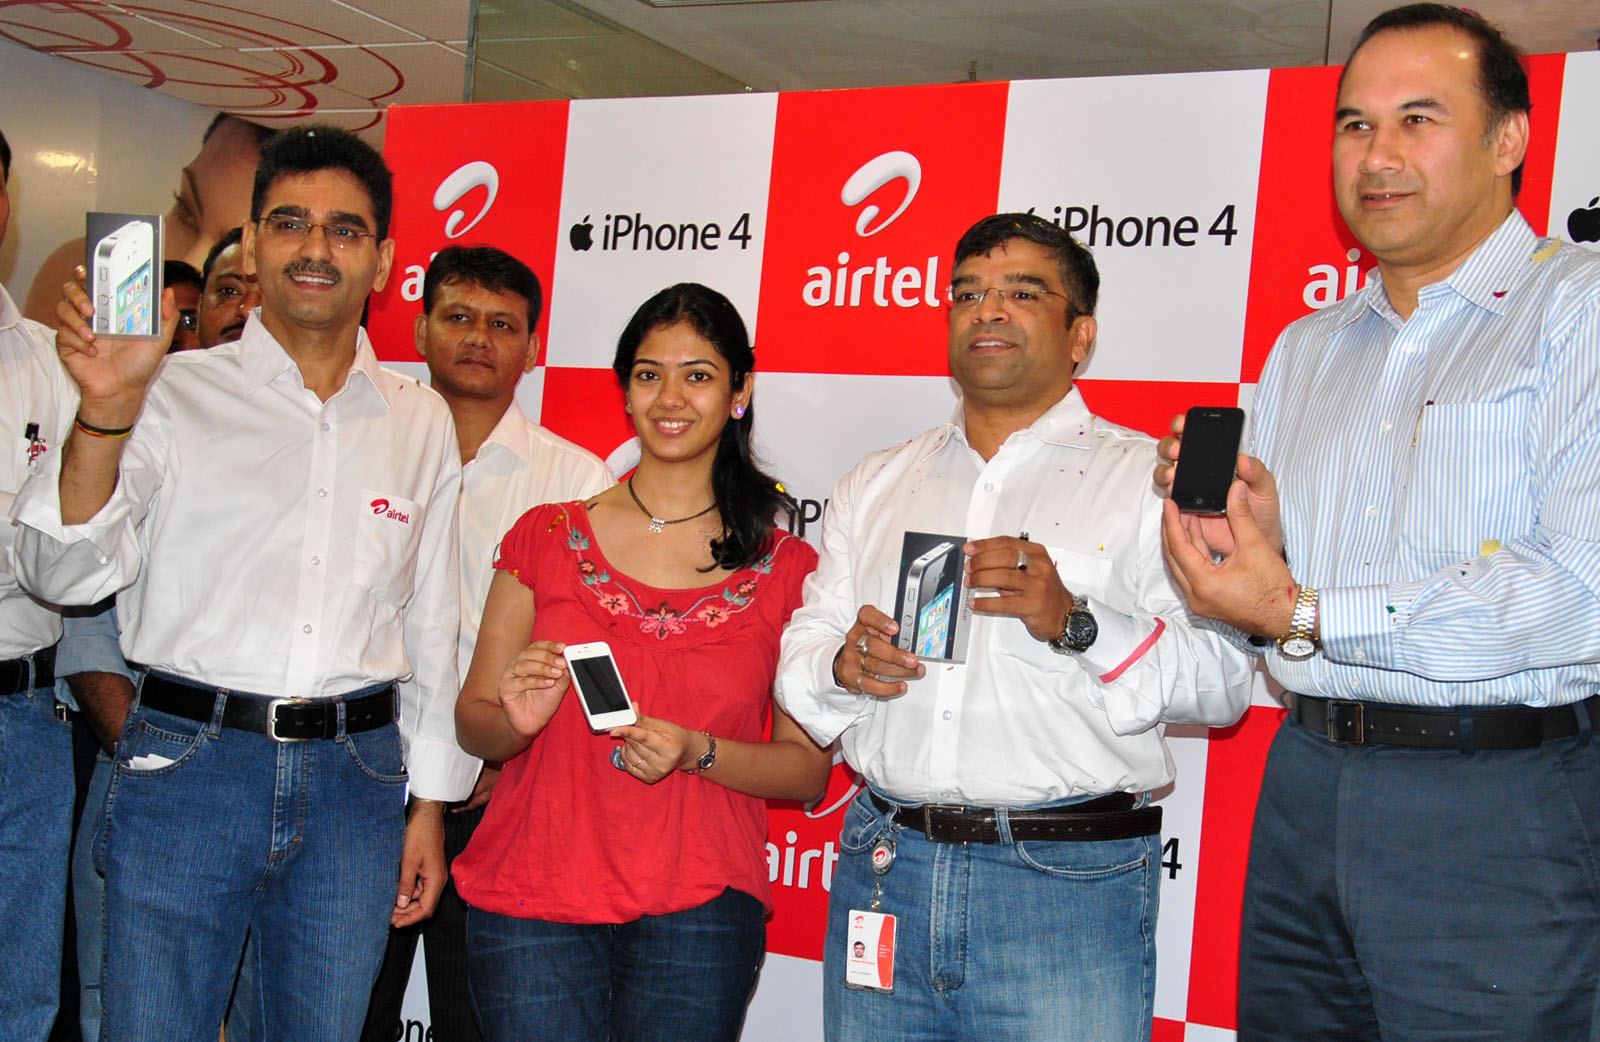 iPhone 4S tariffs in India are as expensive as the phone itself